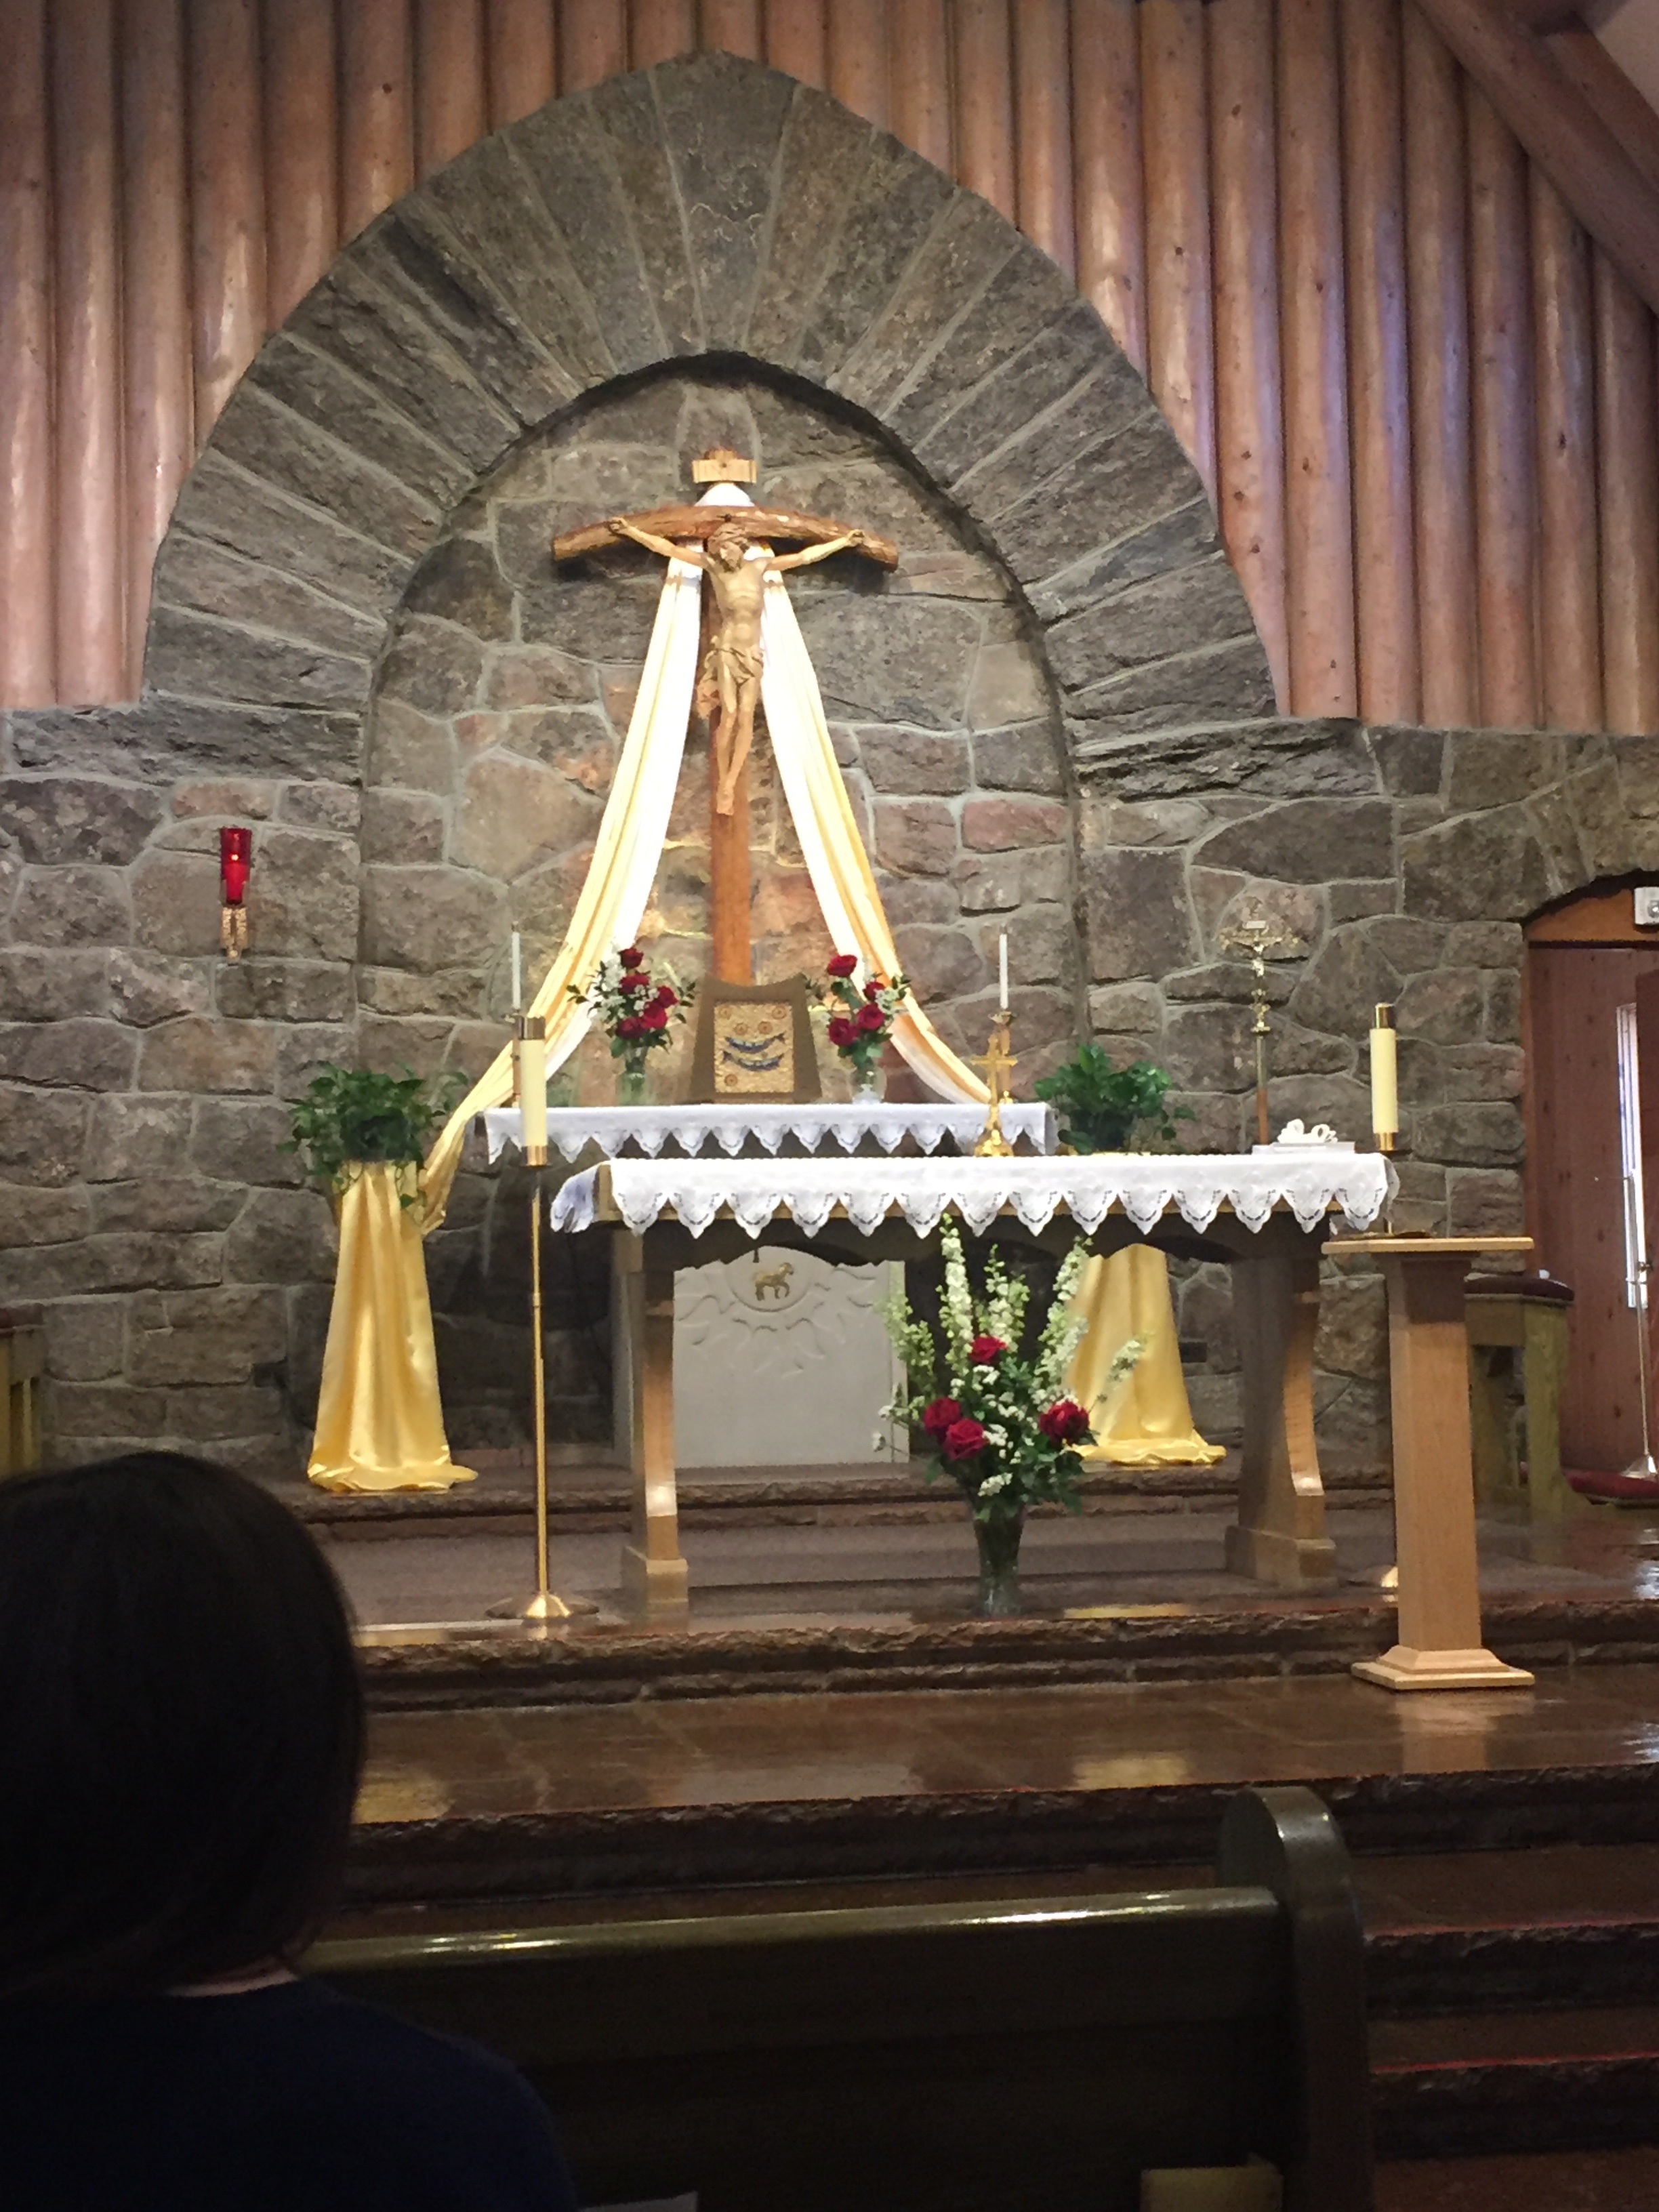 The altar and tabernacle—the tabernacle has the five loaves and two fishes on it.